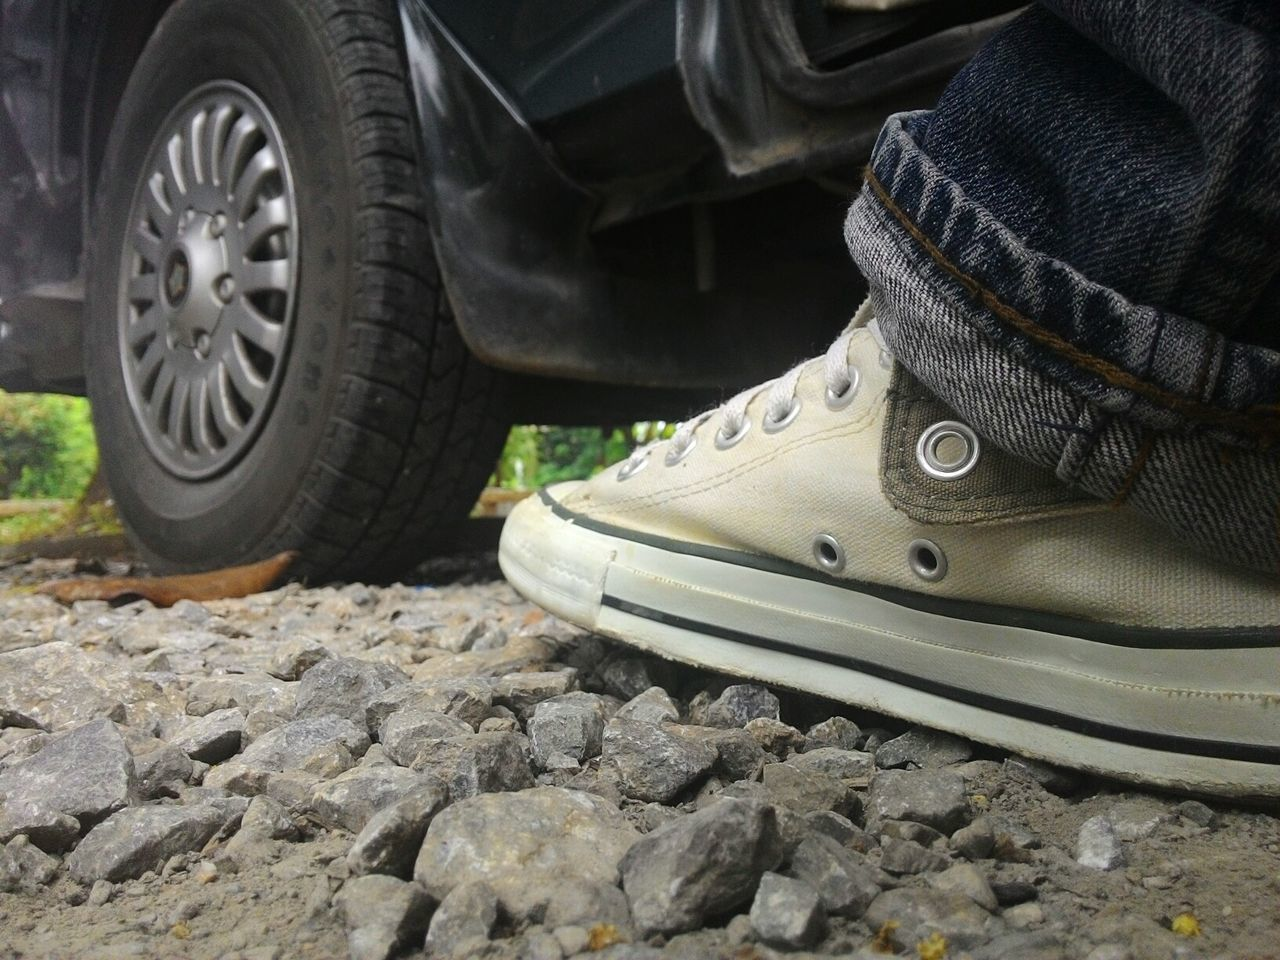 walk Wheel Outdoors Day Close-up Converse Focus Car Walk Relaxing NAN Thailand Life Wallpapers Morning Relax Me :)  Adult Thailand Human Leg Foot Love Stand Alone Stand Up Shoe Stone Jeans